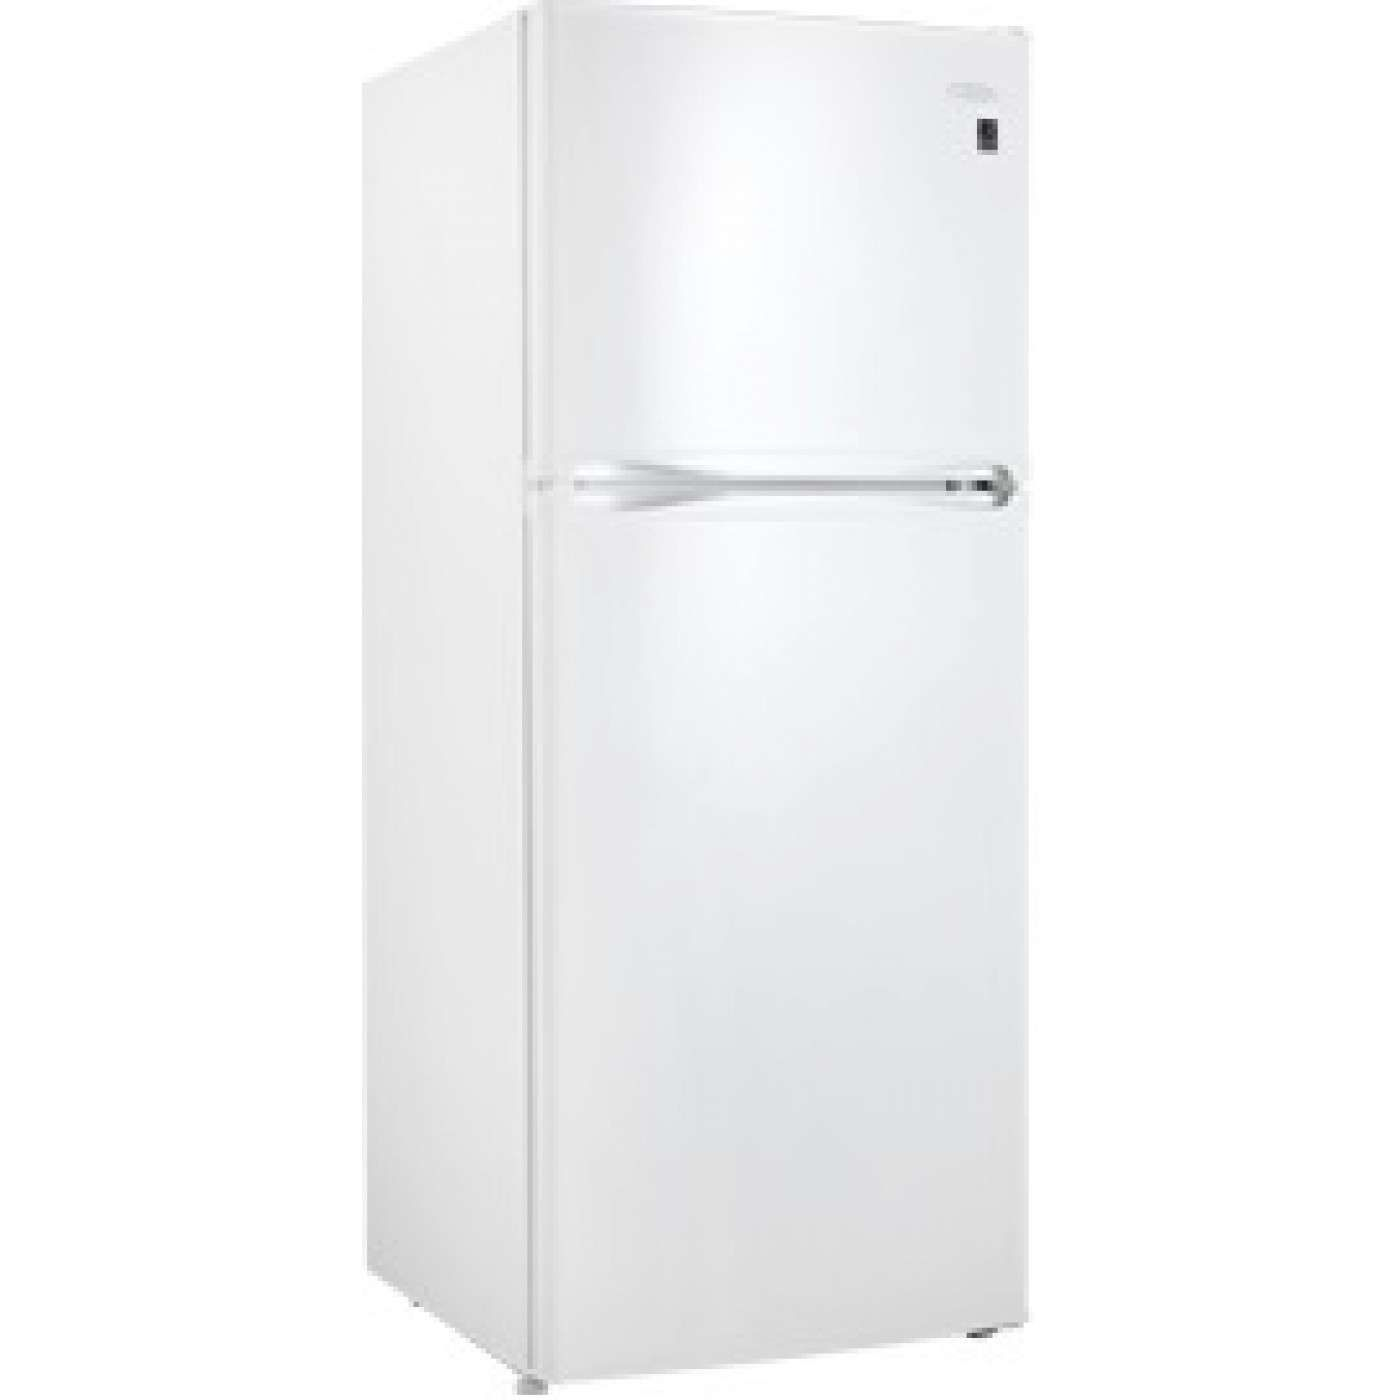 10 0 Cu Ft White Top Freezer Refrigerator